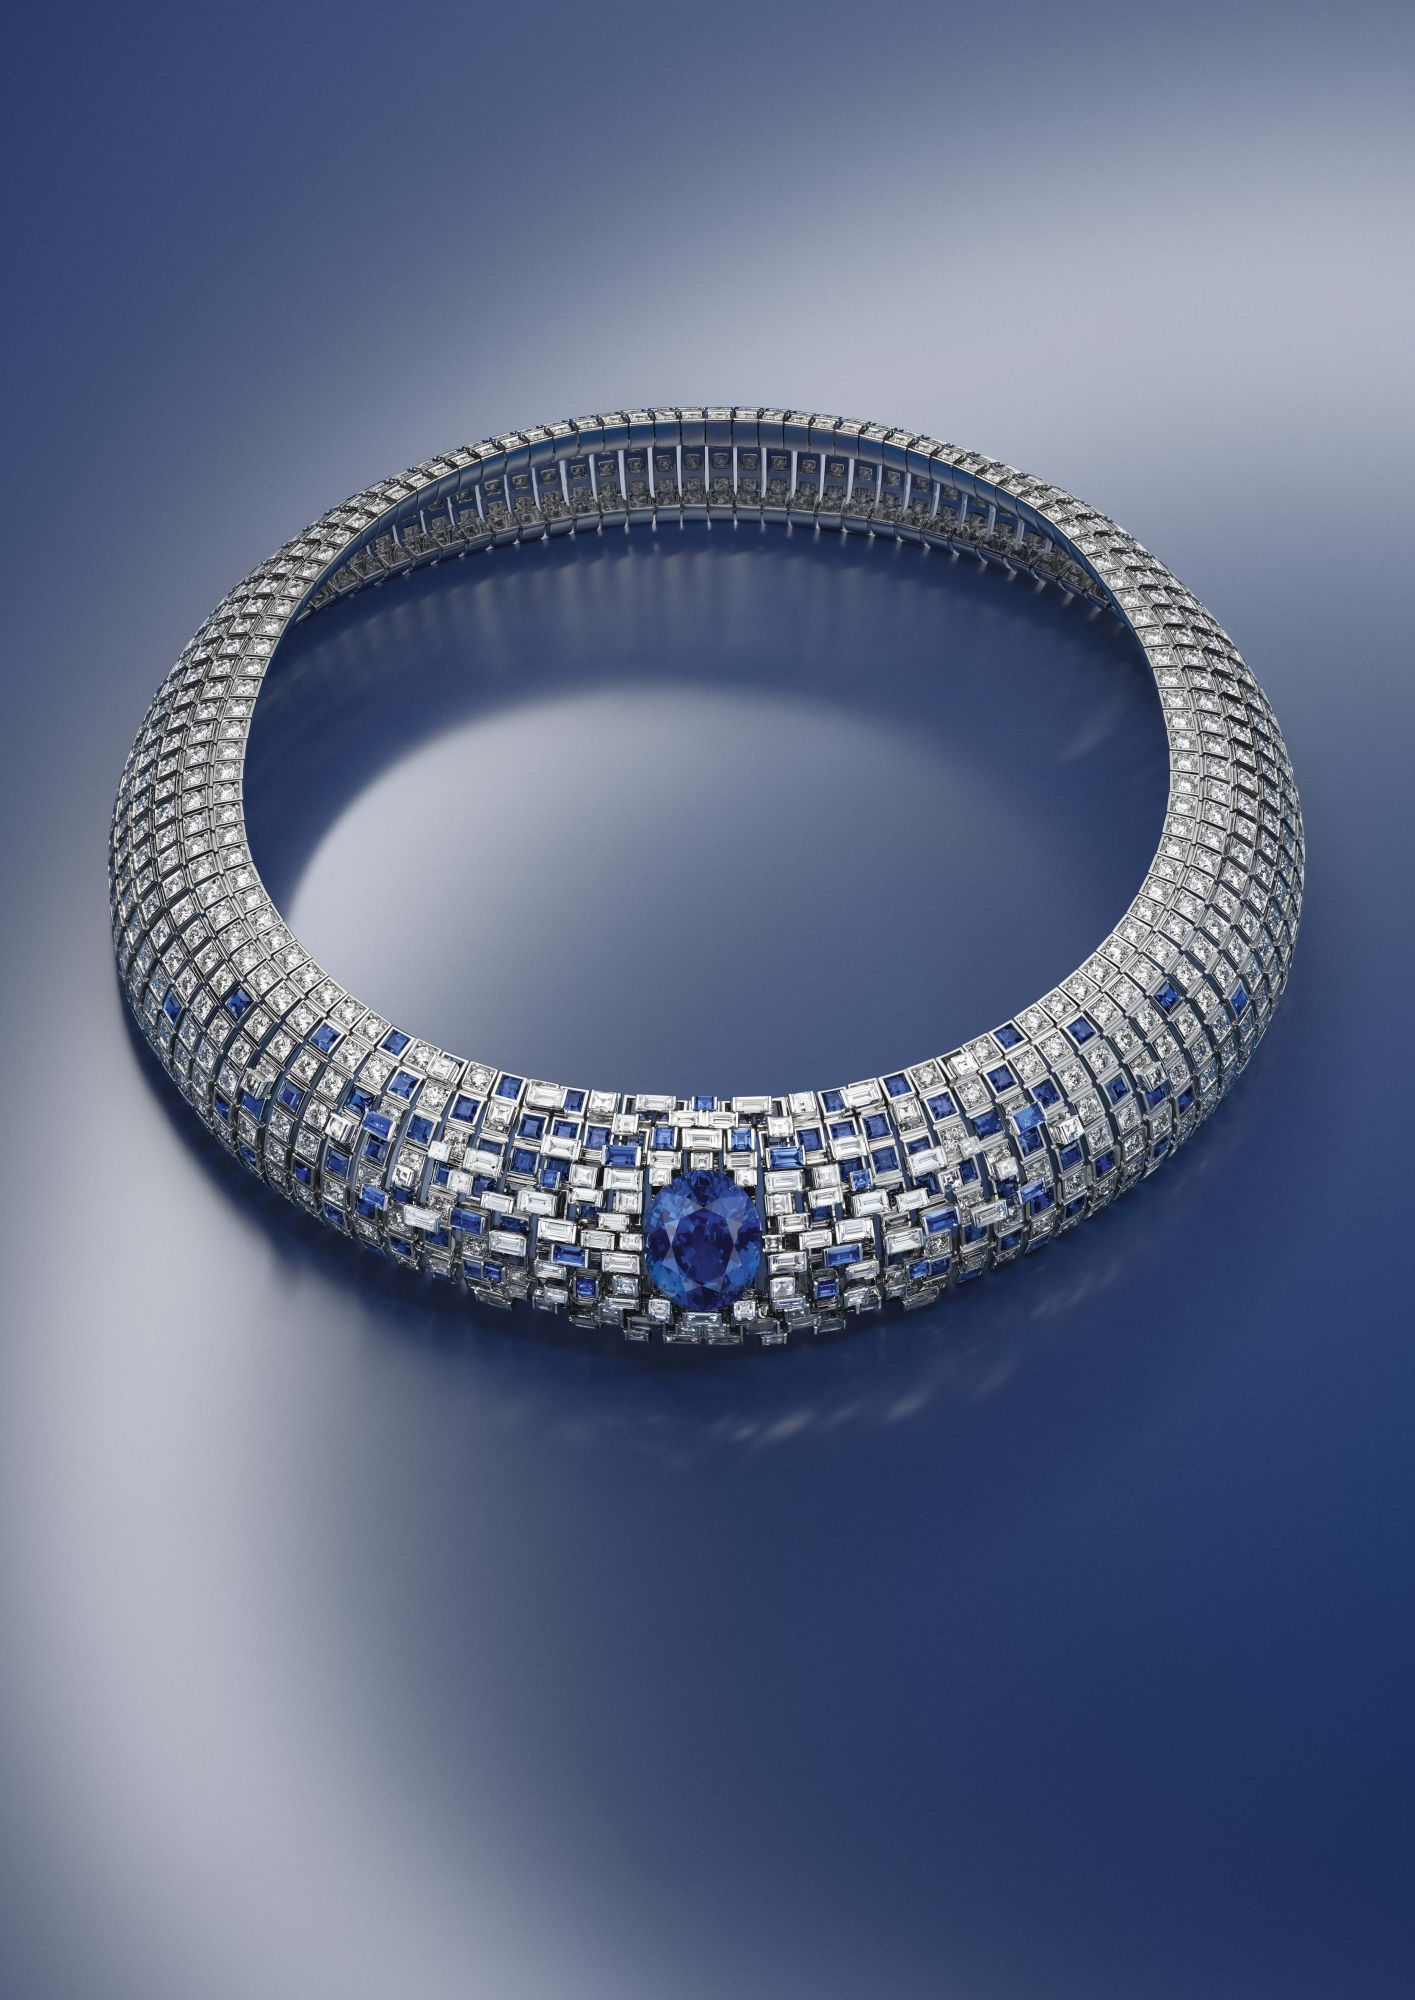 Jewels & Time 2020: 3 Necklaces We Love From the Louis Vuitton Stellar Times High Jewellery Collection